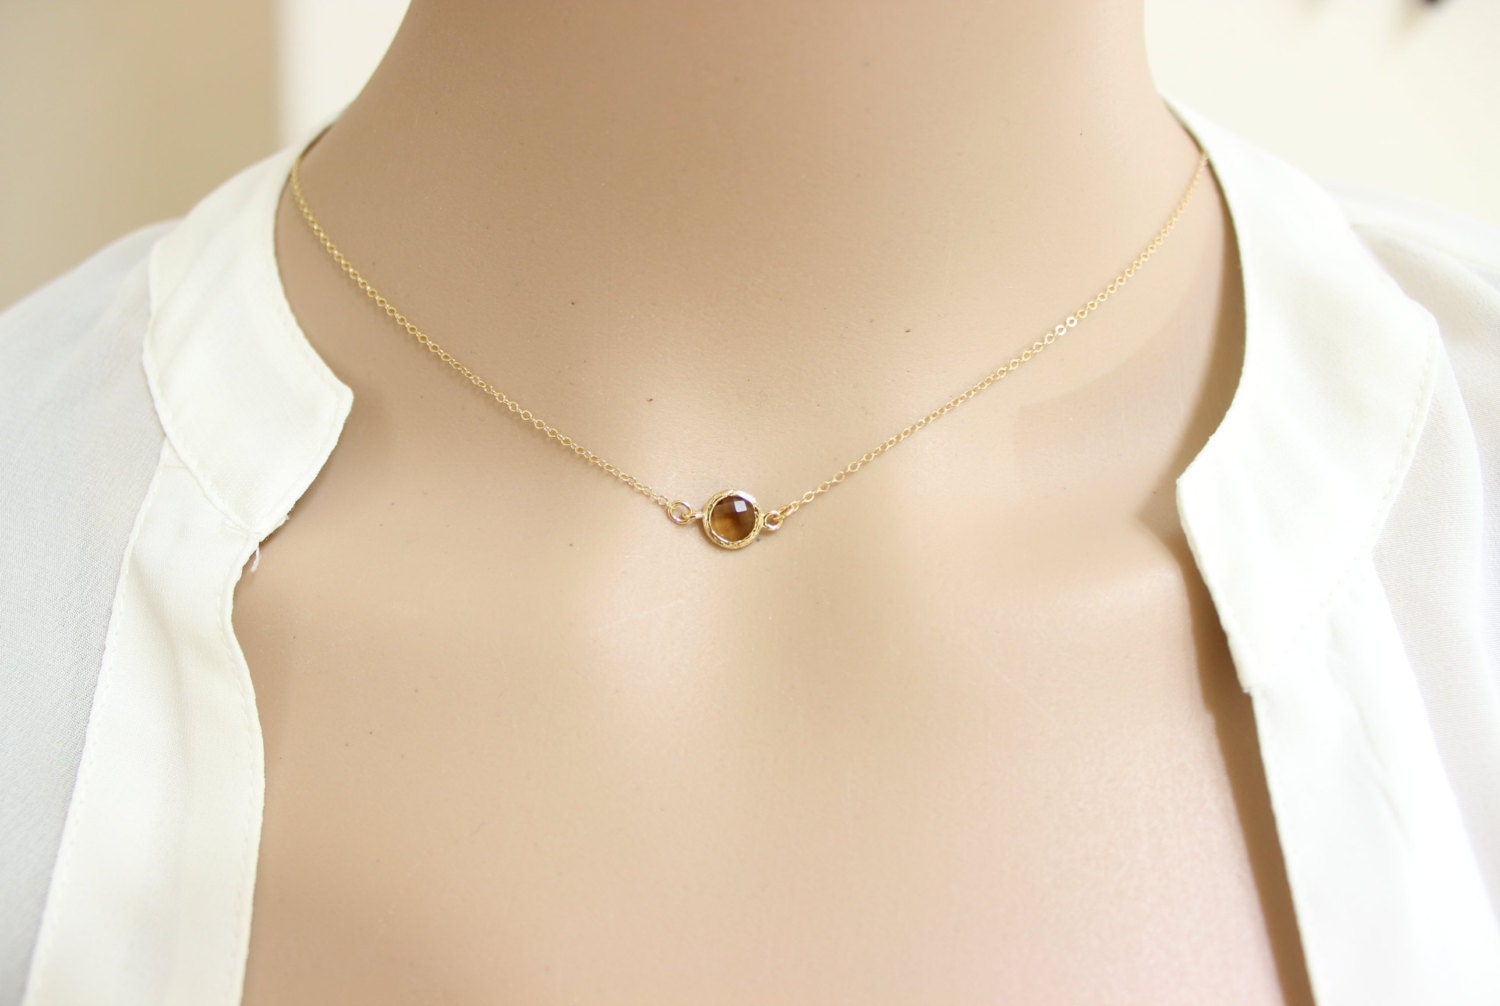 brown necklace delicate necklace simple necklace choker